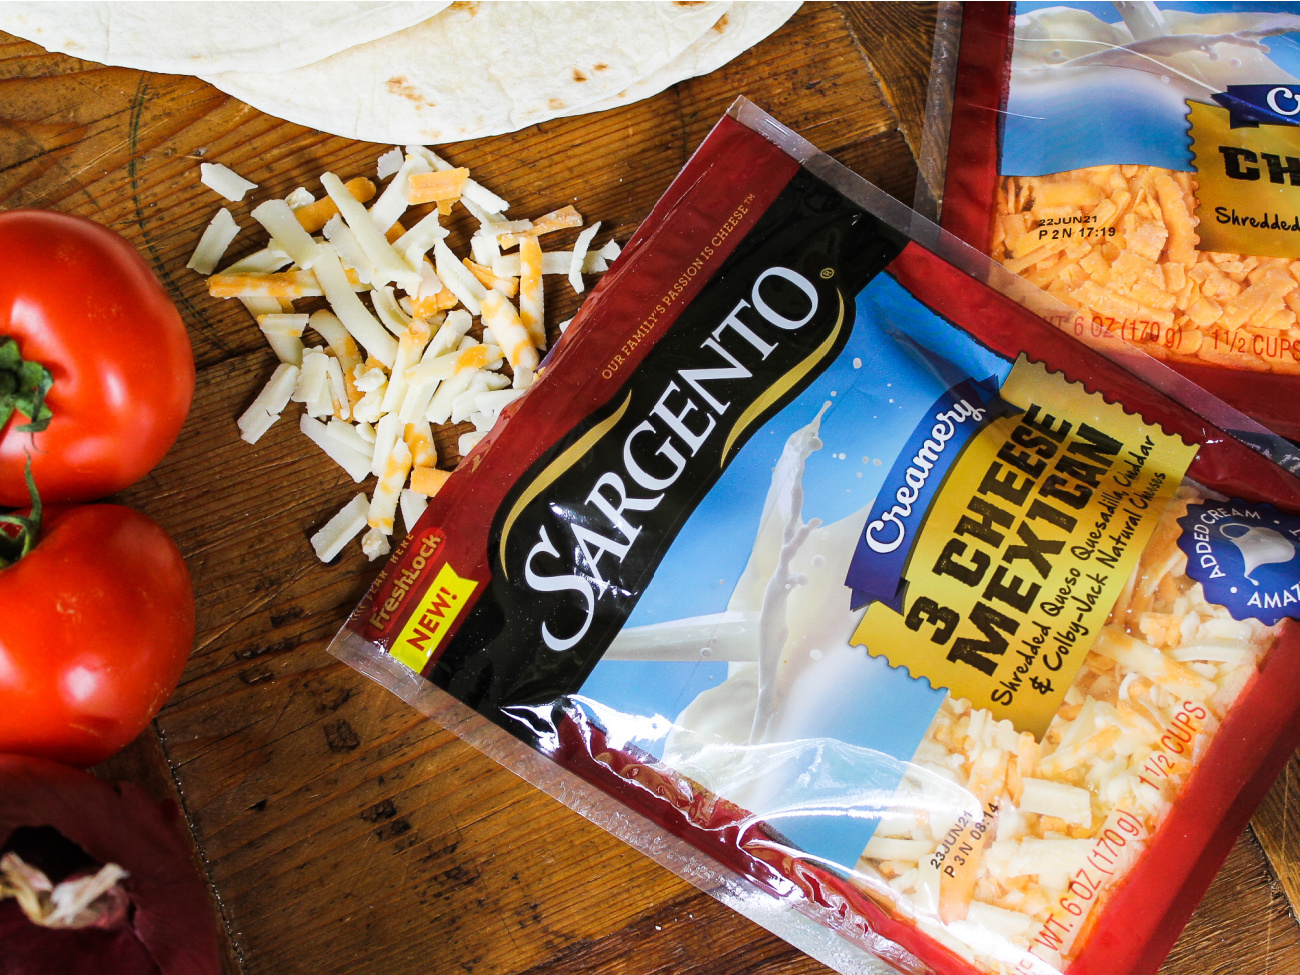 Sargento Creamery Shredded Cheese Just $1.40 At Publix on I Heart Publix